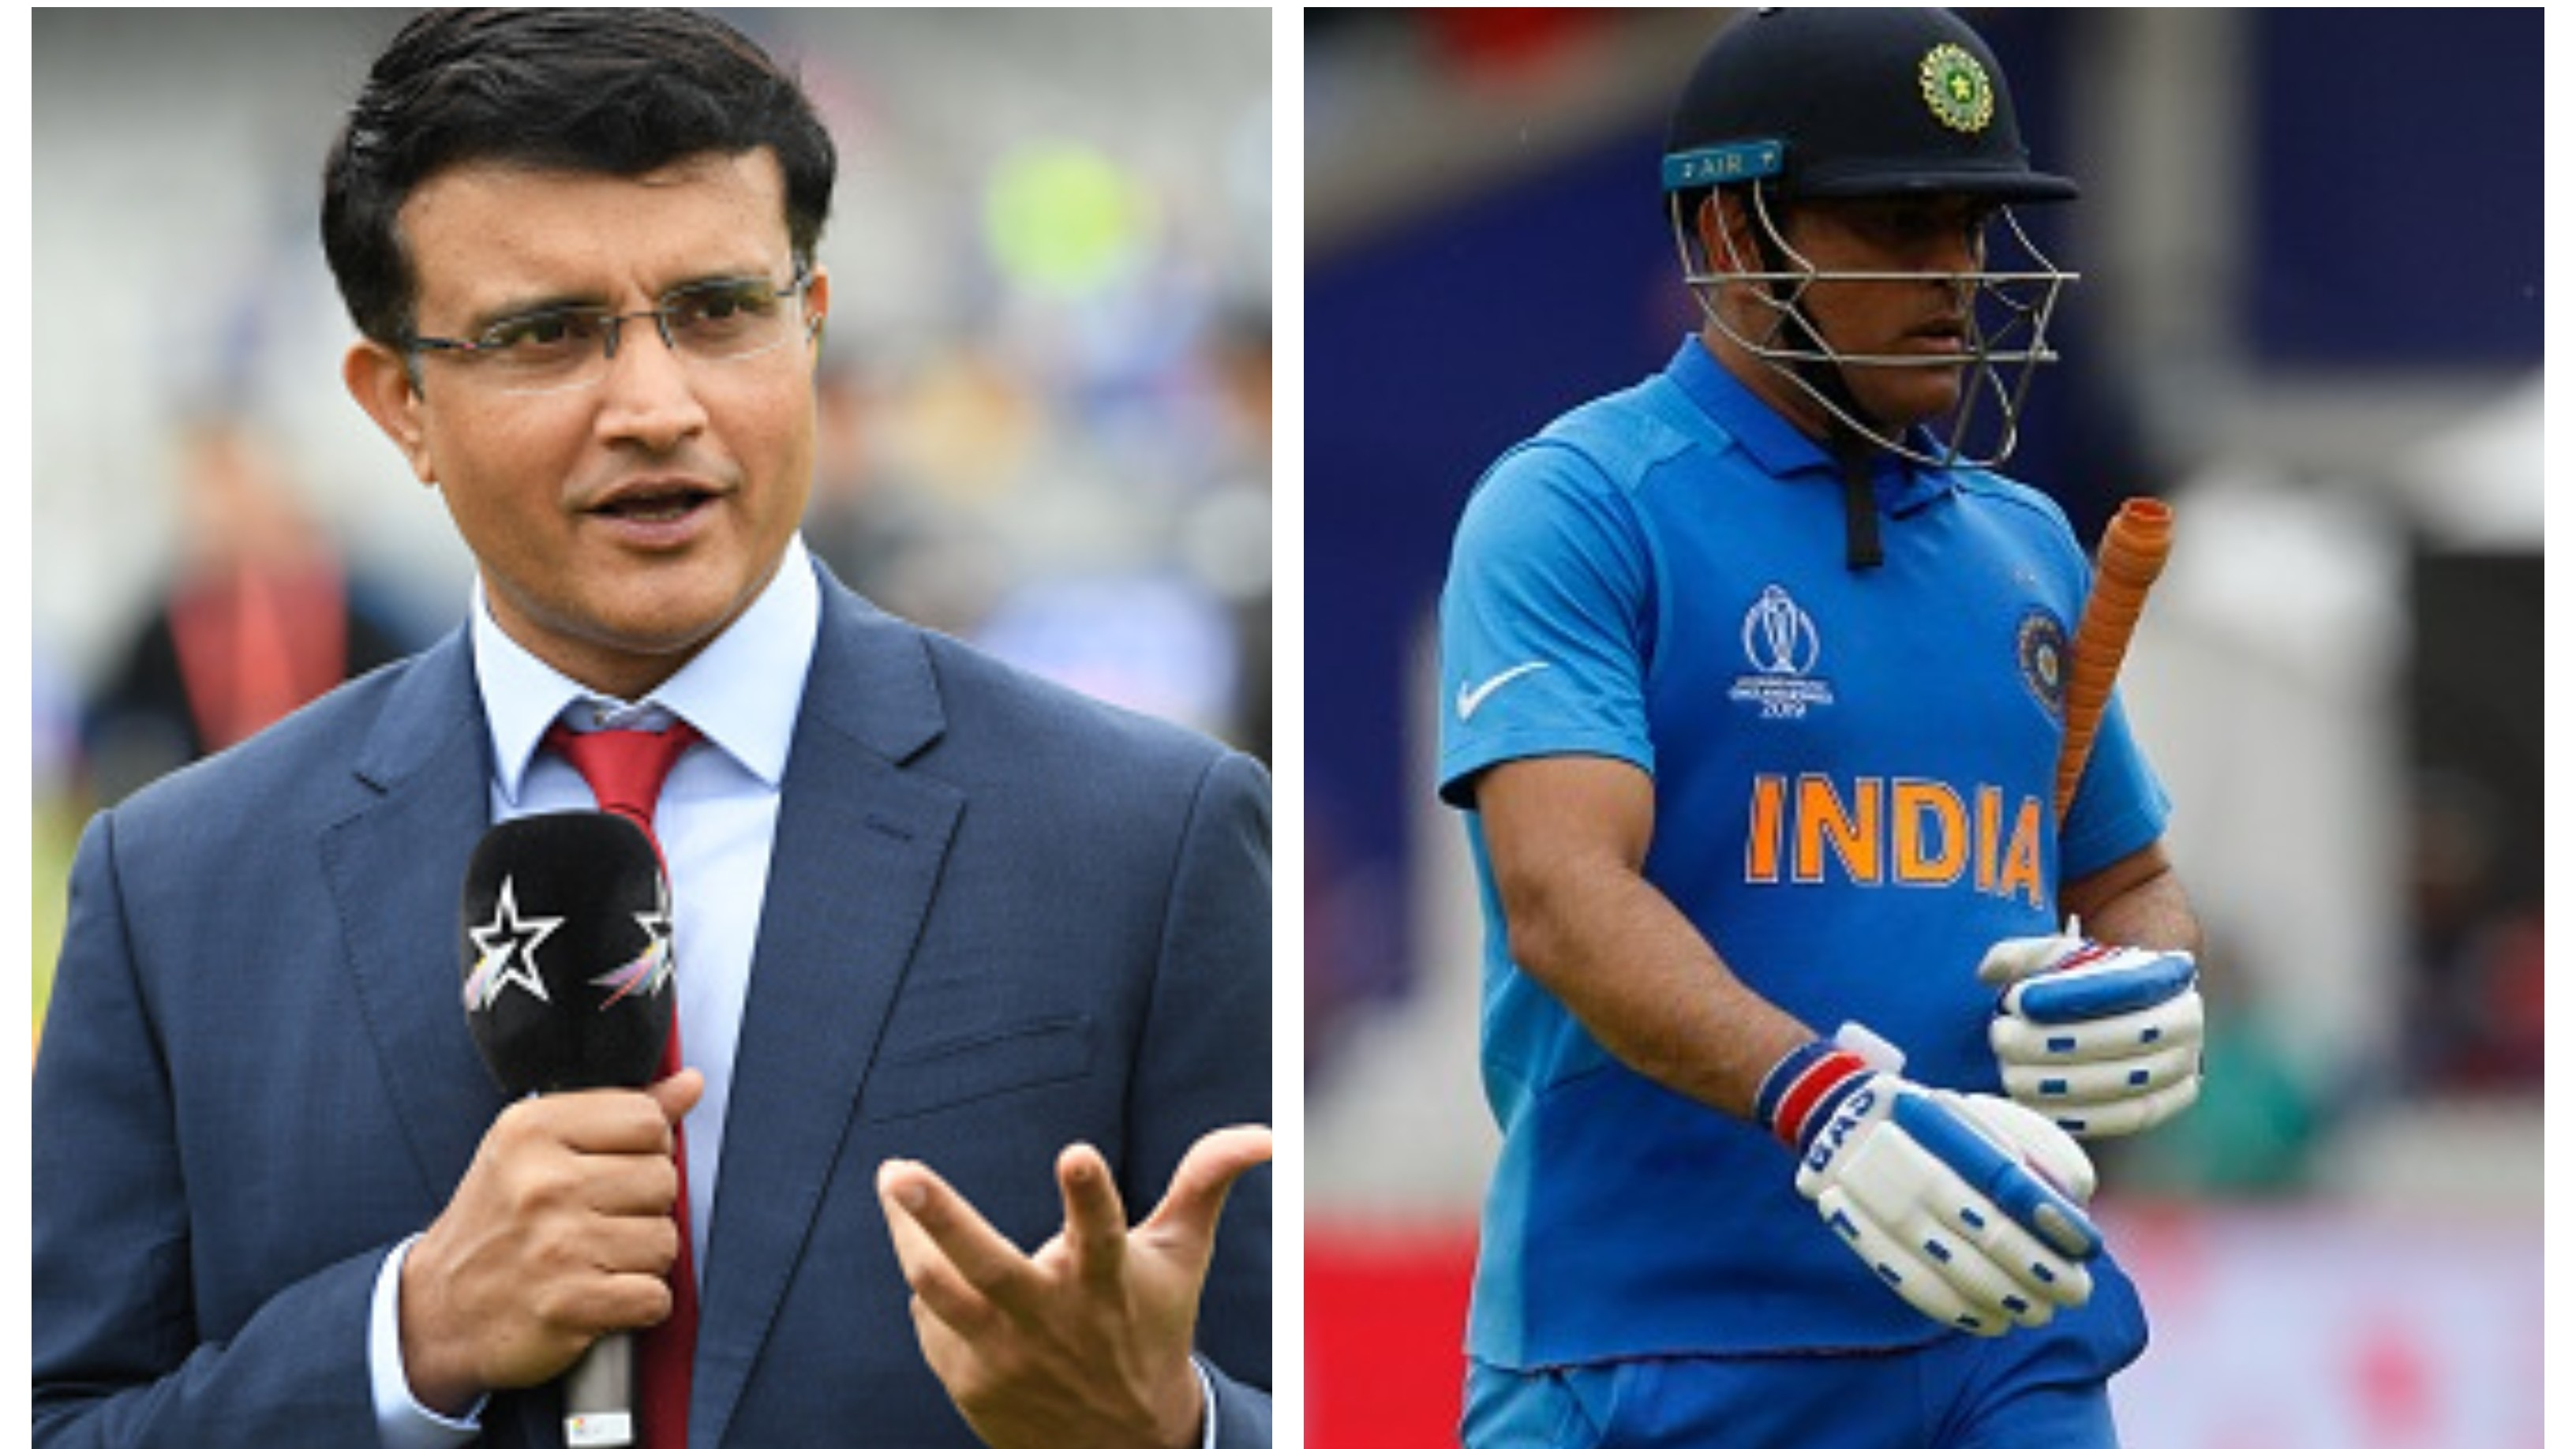 BCCI president Sourav Ganguly discloses his line of action on MS Dhoni's cricket future